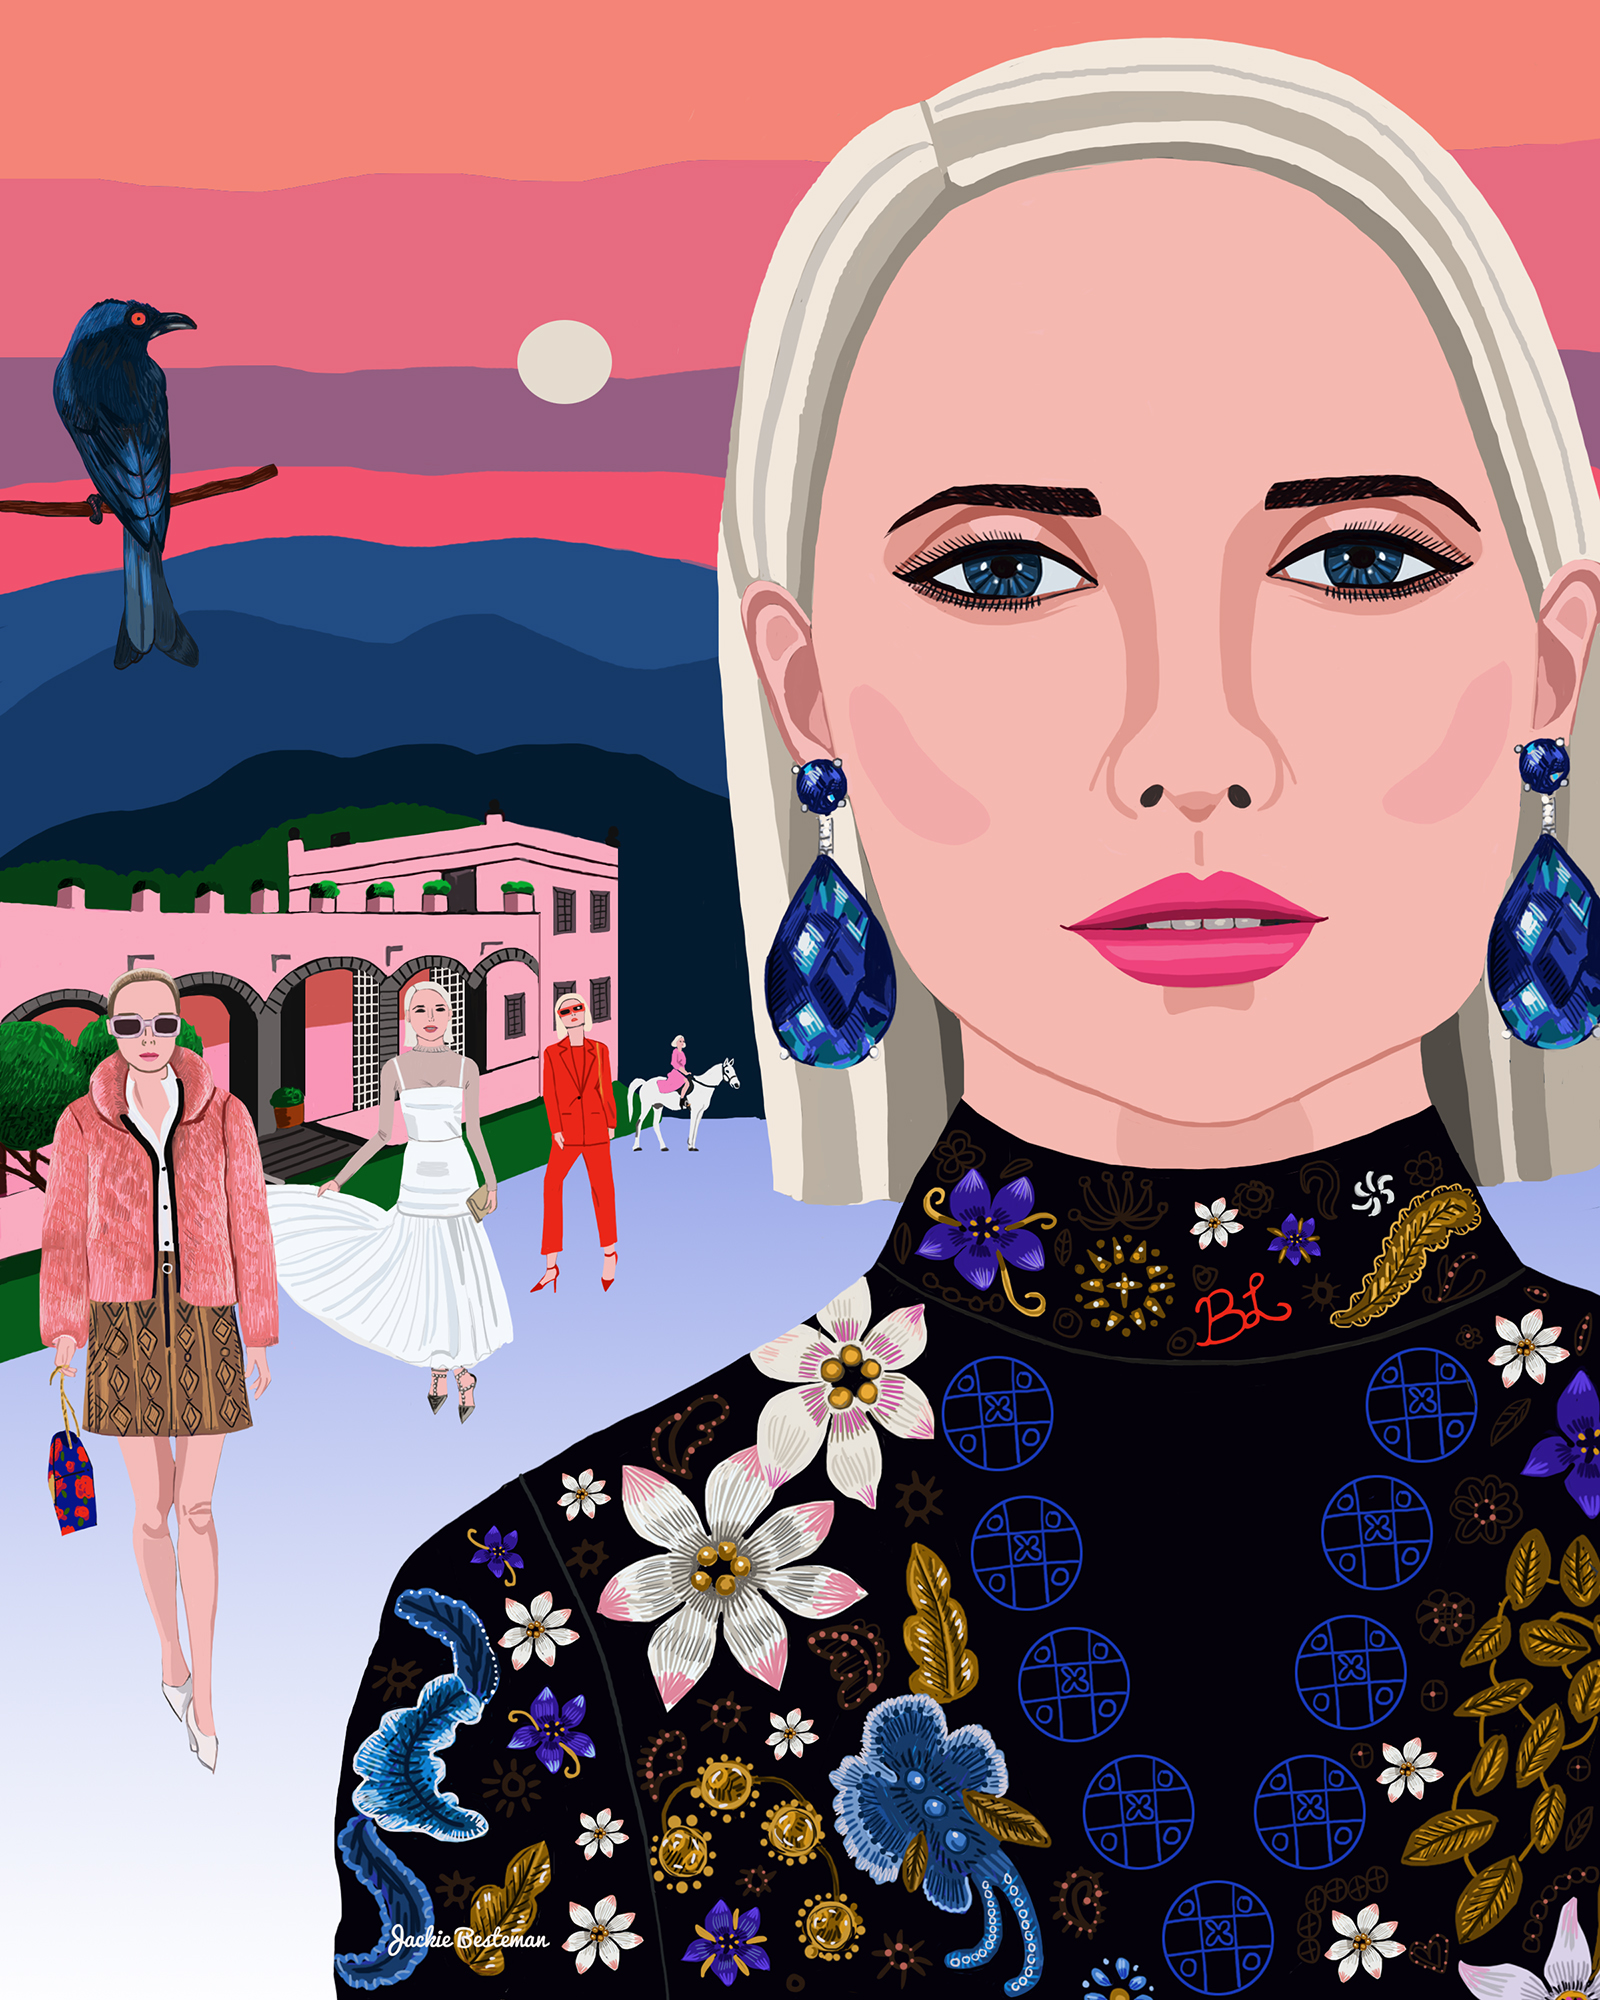 """Beth Levis - """"I love the attention to detail and authenticity she has created by illustrating some of my fashion moments. The memories she captivates and the technique she uses to do so is both inspirational and remarkable"""""""